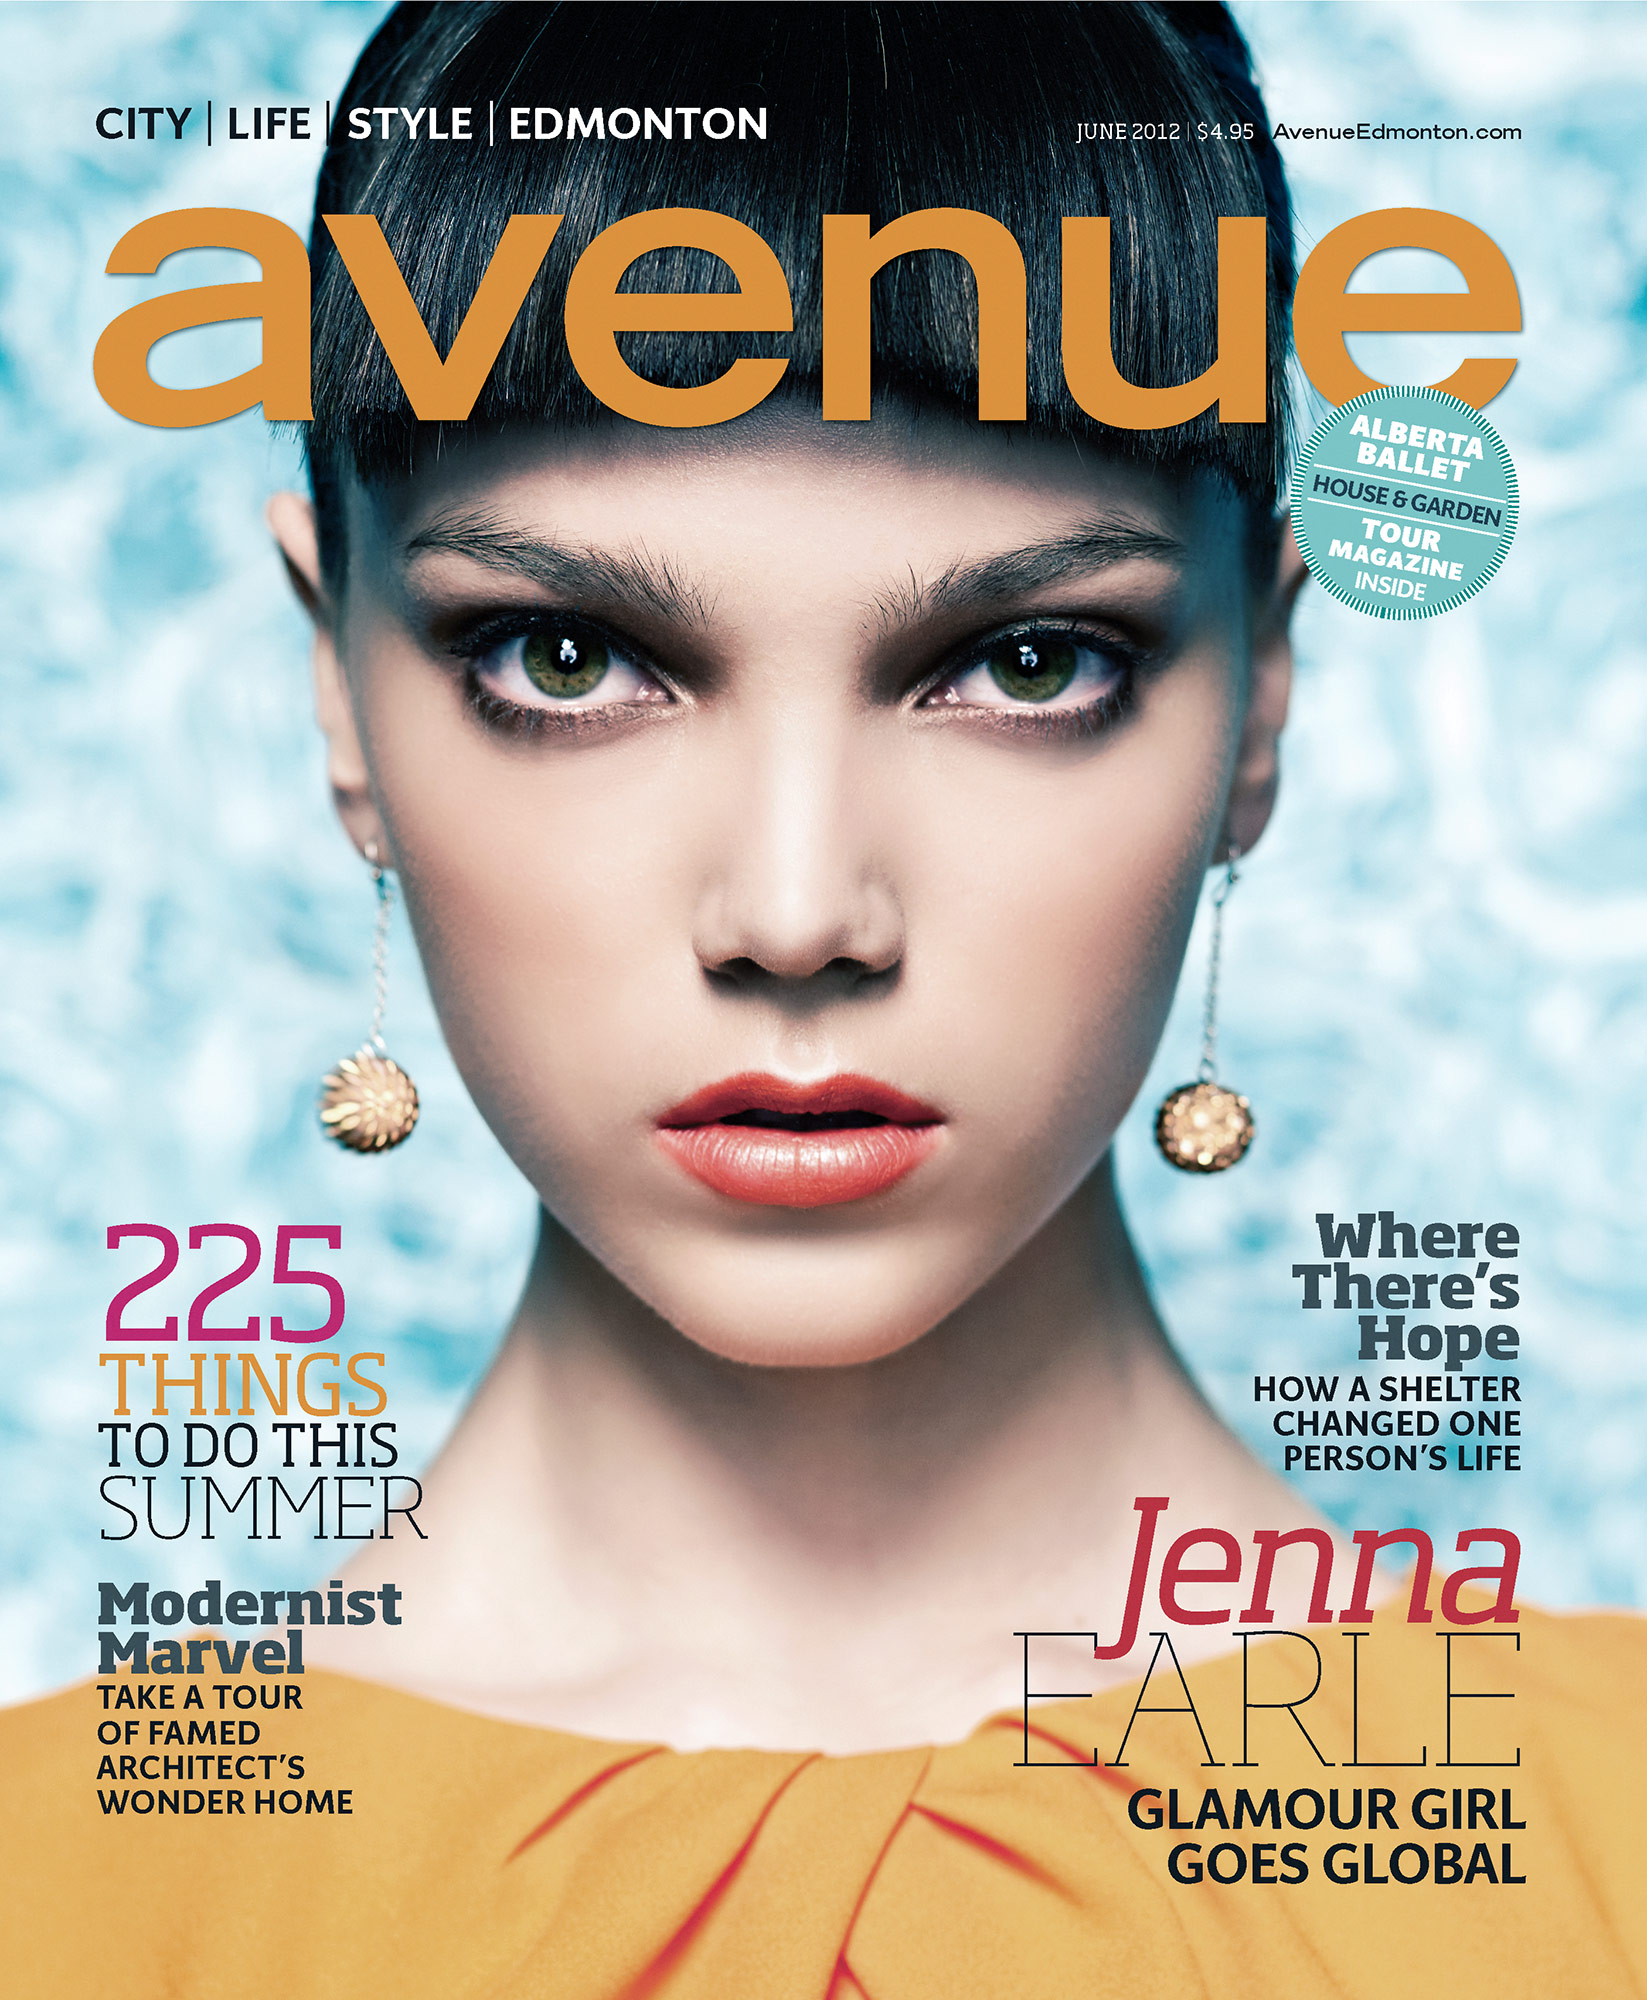 AVE_JUNE_FINAL_COVER2.pms15%sat_Askn_FS_LQ2_sat10%_AC_AT